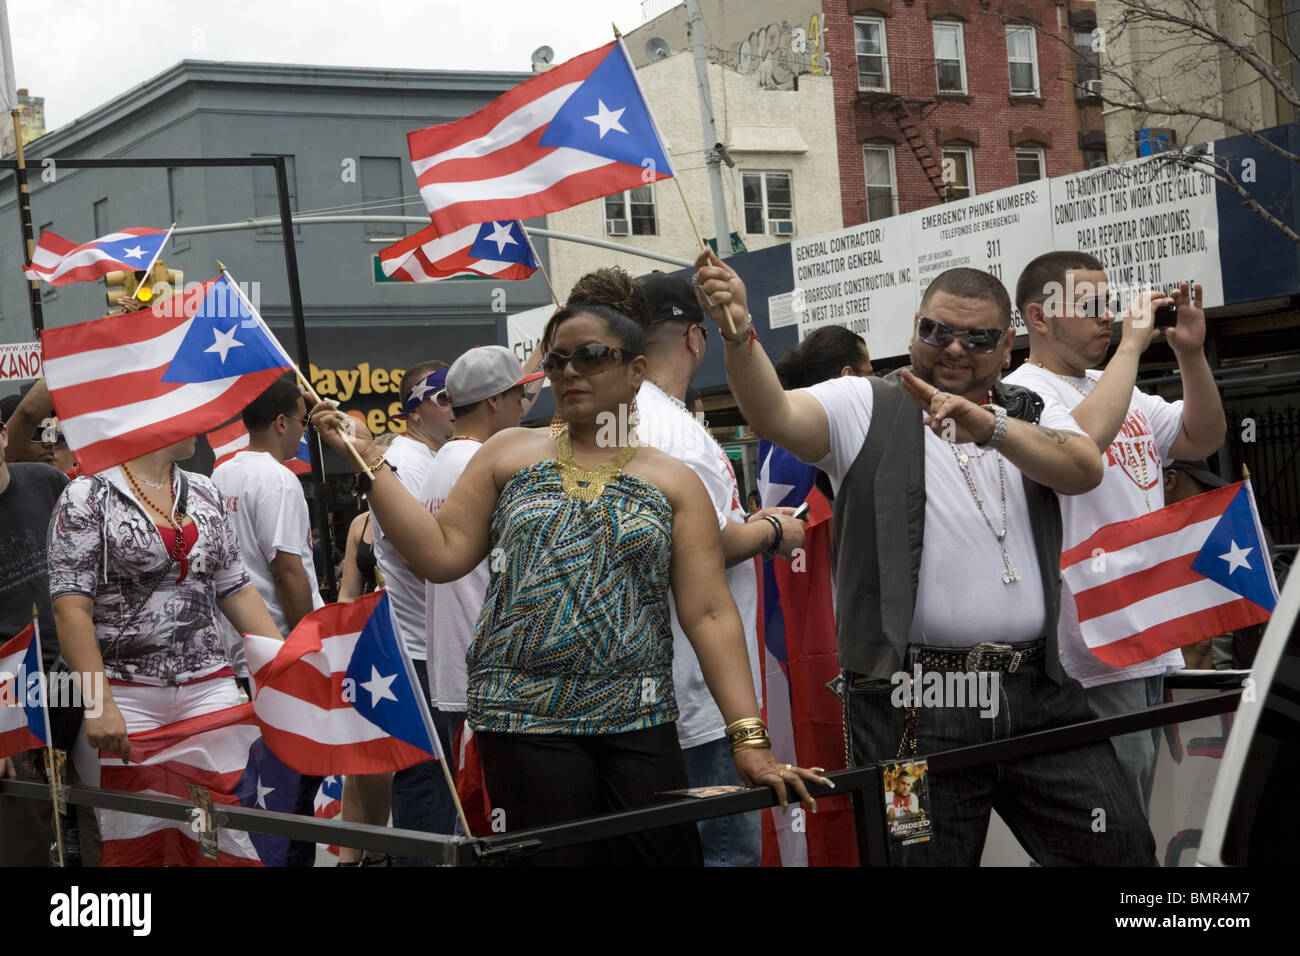 Proud Puerto Ricans on float at the Puerto Rican Parade in Brooklyn, NY. - Stock Image